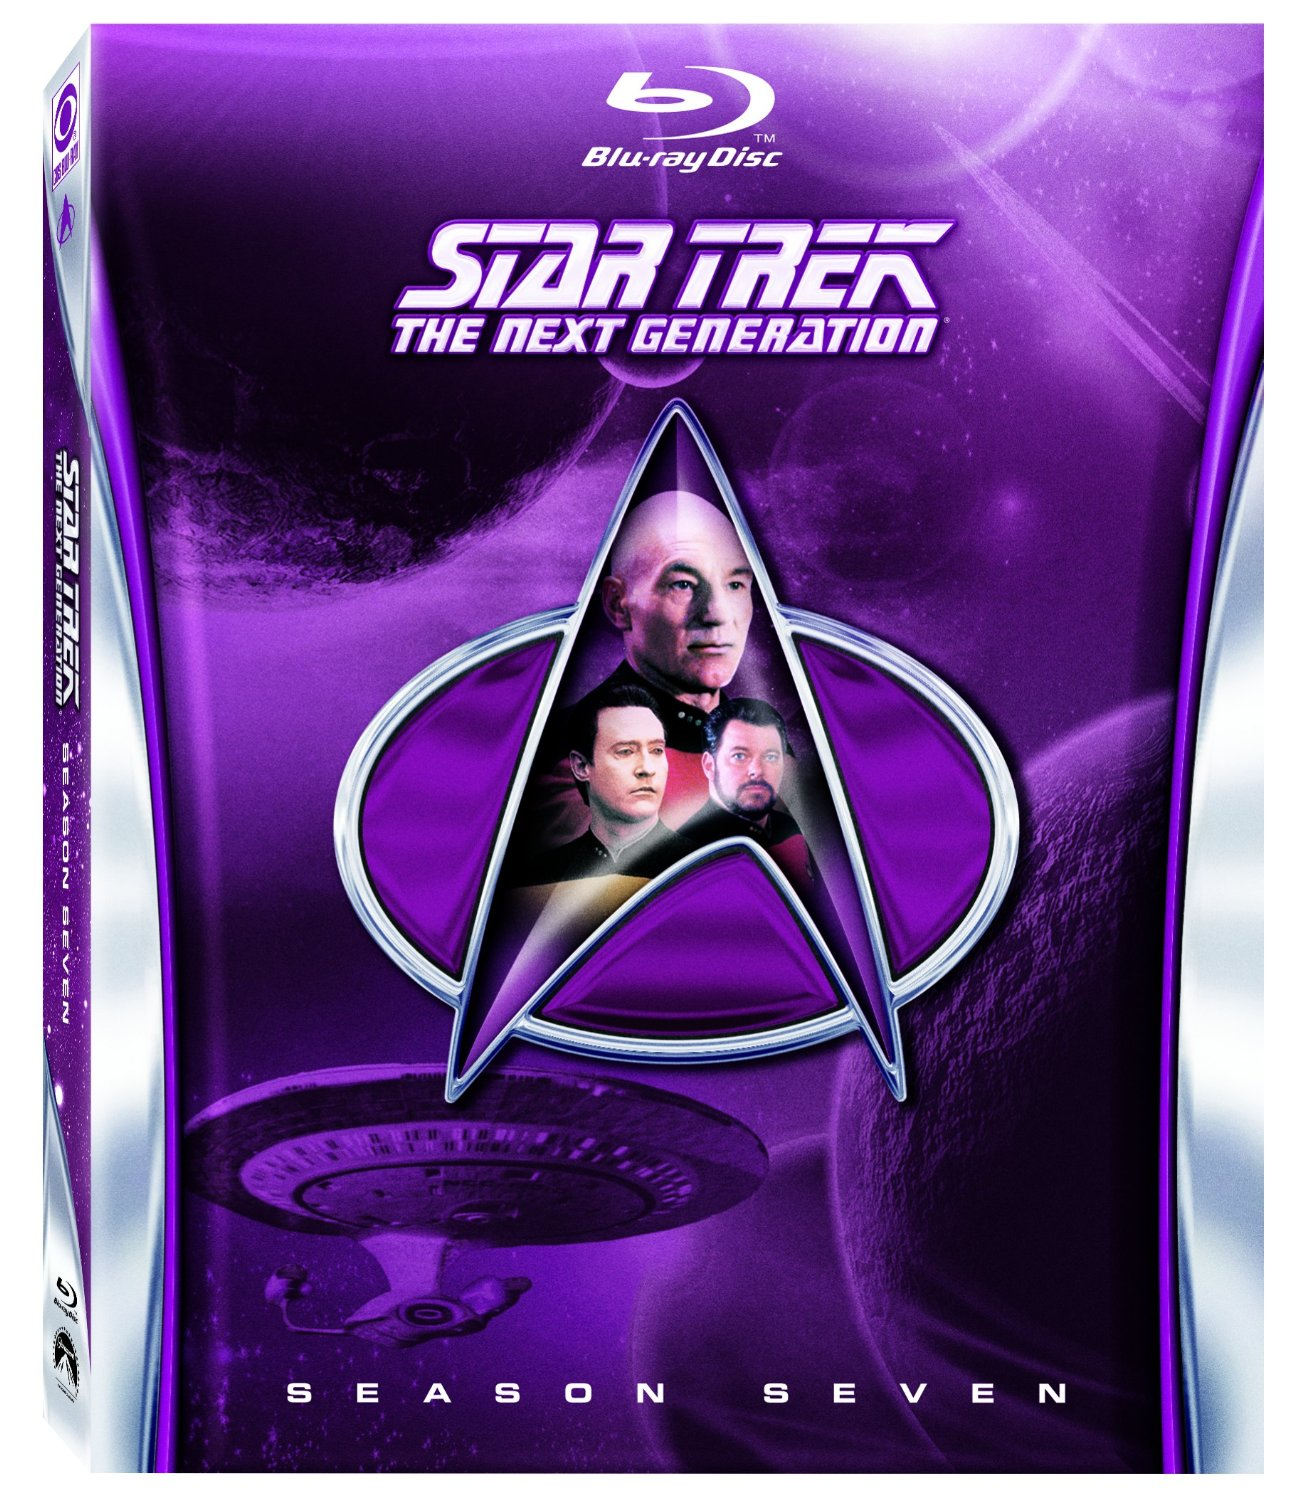 Star Trek TNG Season 7 Blu-ray cover Star Trek TNG Season 7 Blu-Ray Trailer